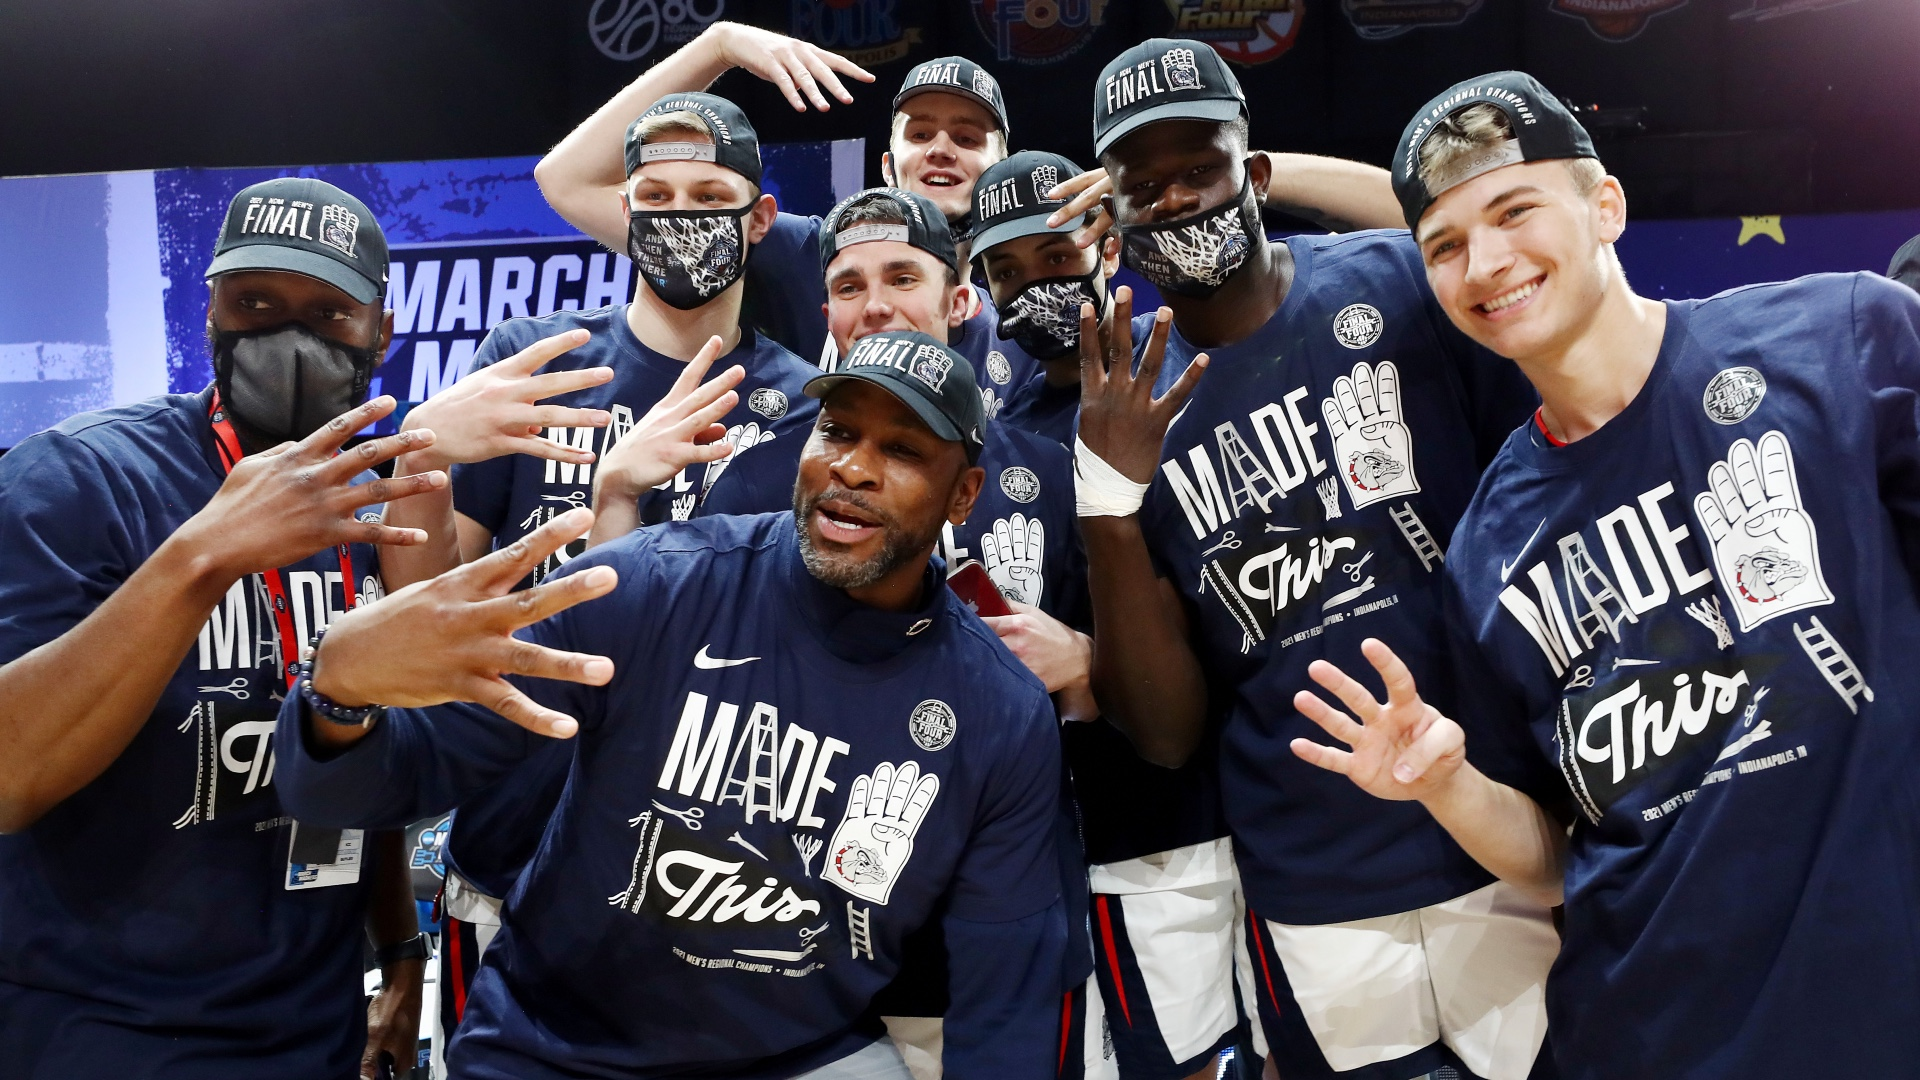 Ranking the Final Four teams' chances to win it all, from the Zags to Bruins